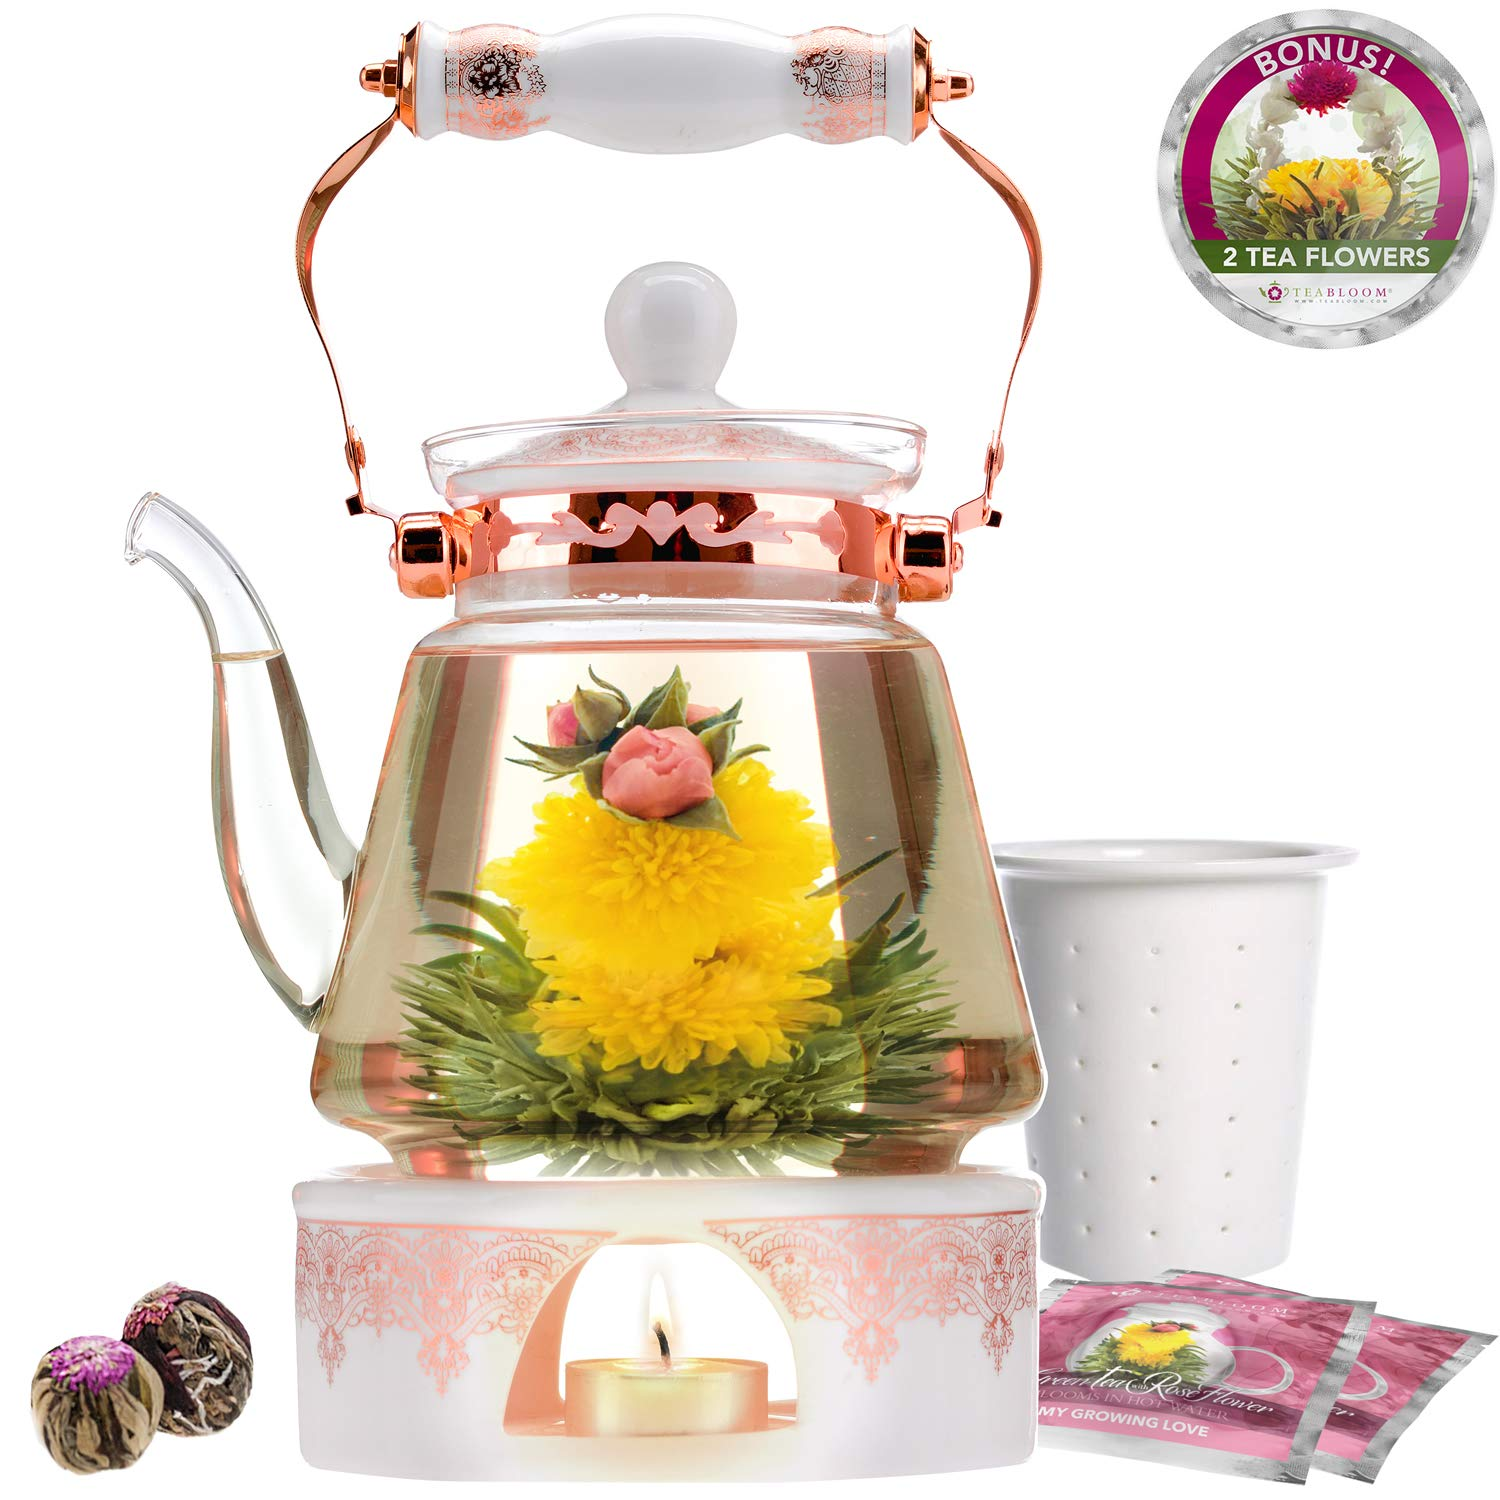 Teabloom Buckingham Palace Teapot & Flowering Tea Gift Set (6 Pieces) - Stovetop Safe Glass Teapot (40oz/1200ml), Porcelain Lid, Tea Warmer, Porcelain Loose Tea Infuser, 2 Gourmet Rose Blooming Teas